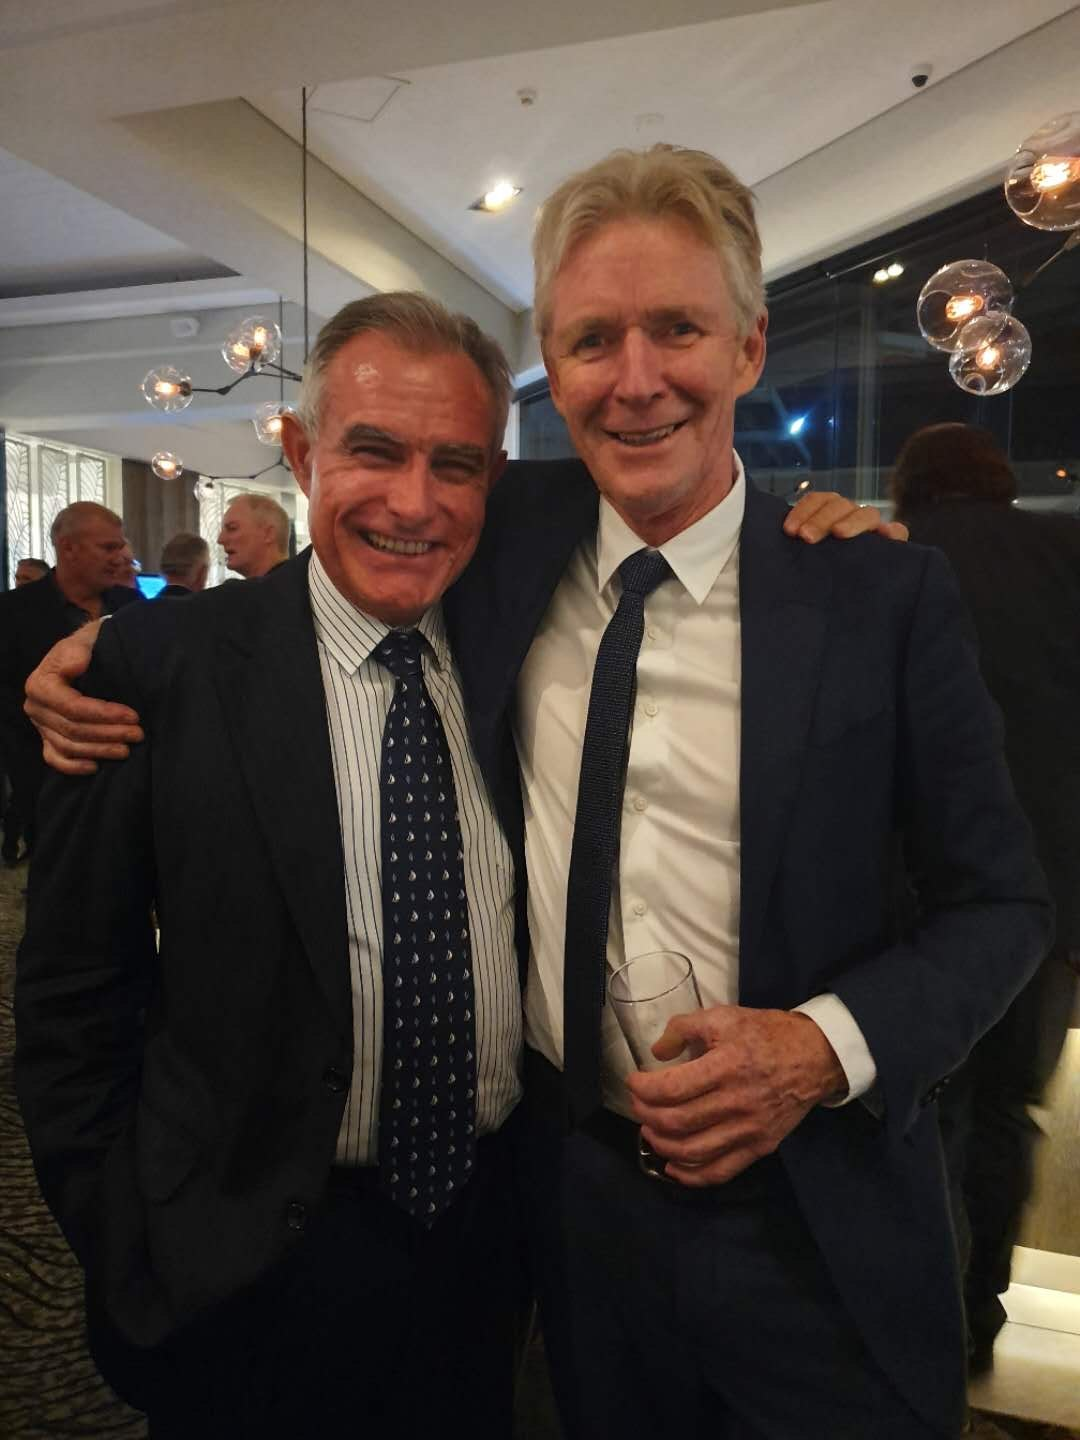 Andrew Chapman and Colin Bransgrove Celebrate Marinas19